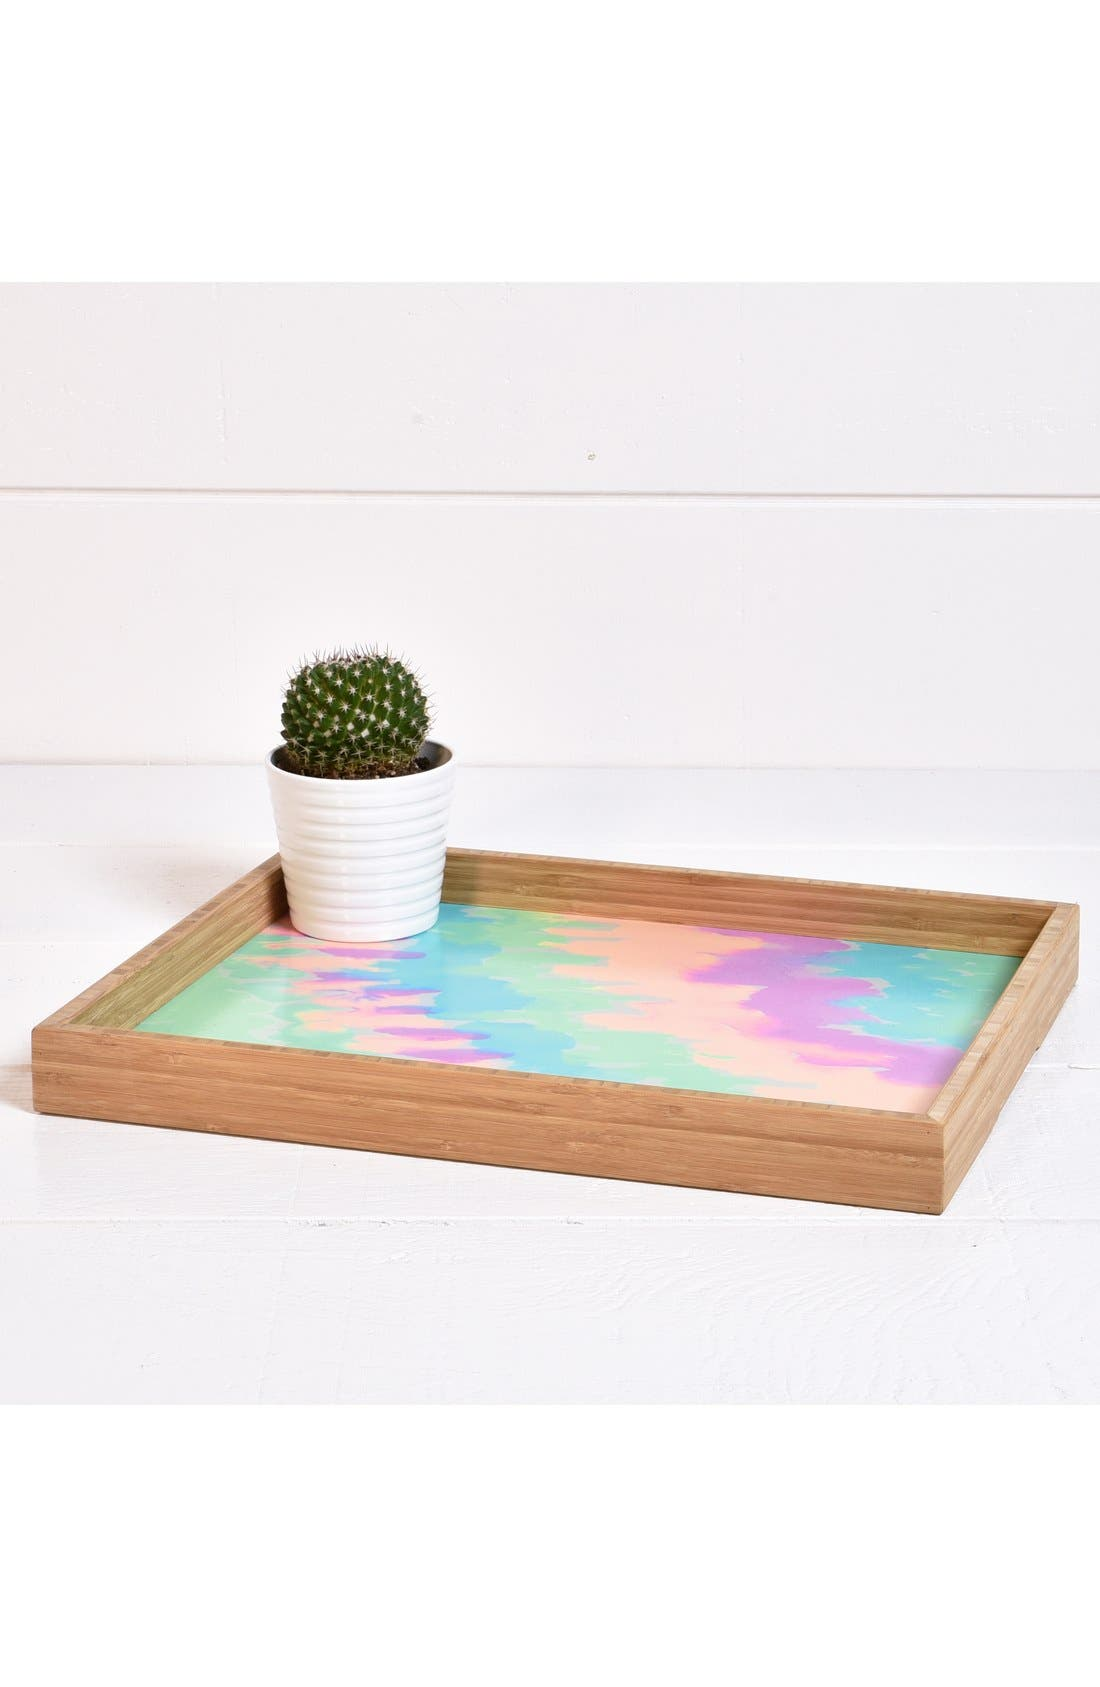 'Some Kind of Wonderful' Decorative Serving Tray,                             Alternate thumbnail 3, color,                             300